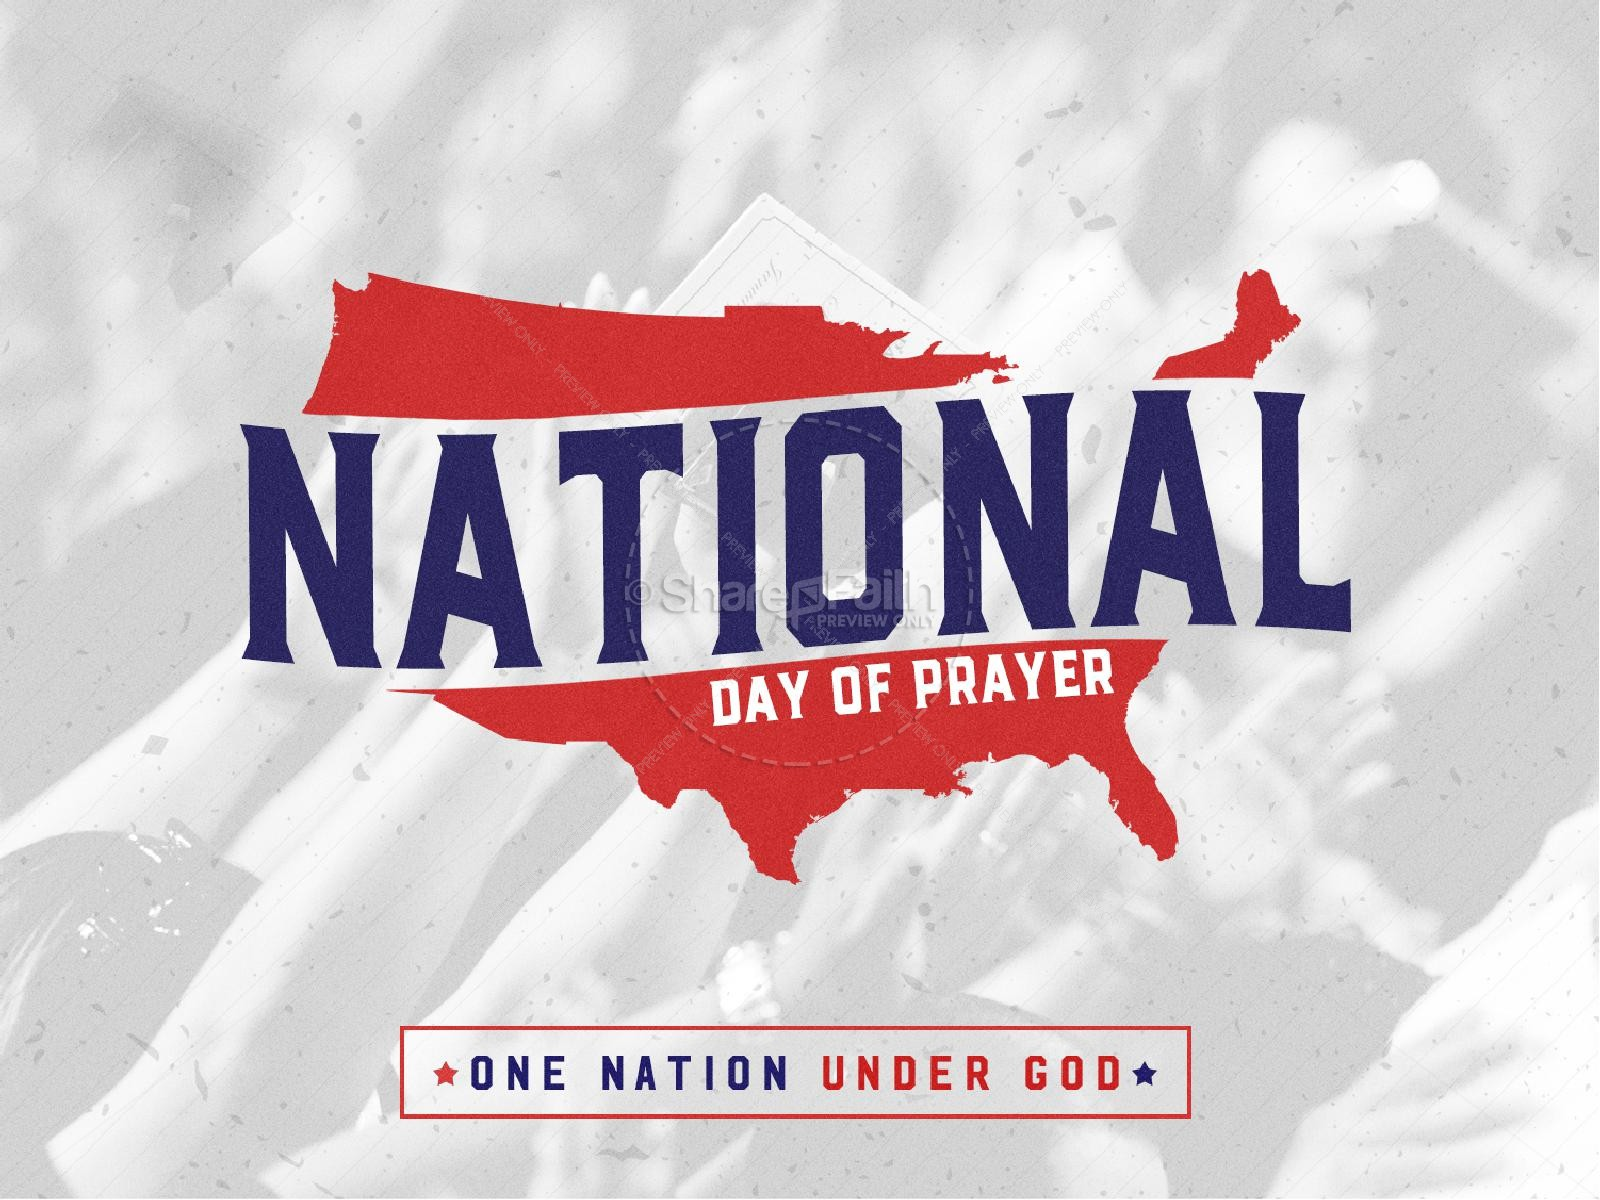 American National Day of Prayer Graphic Design